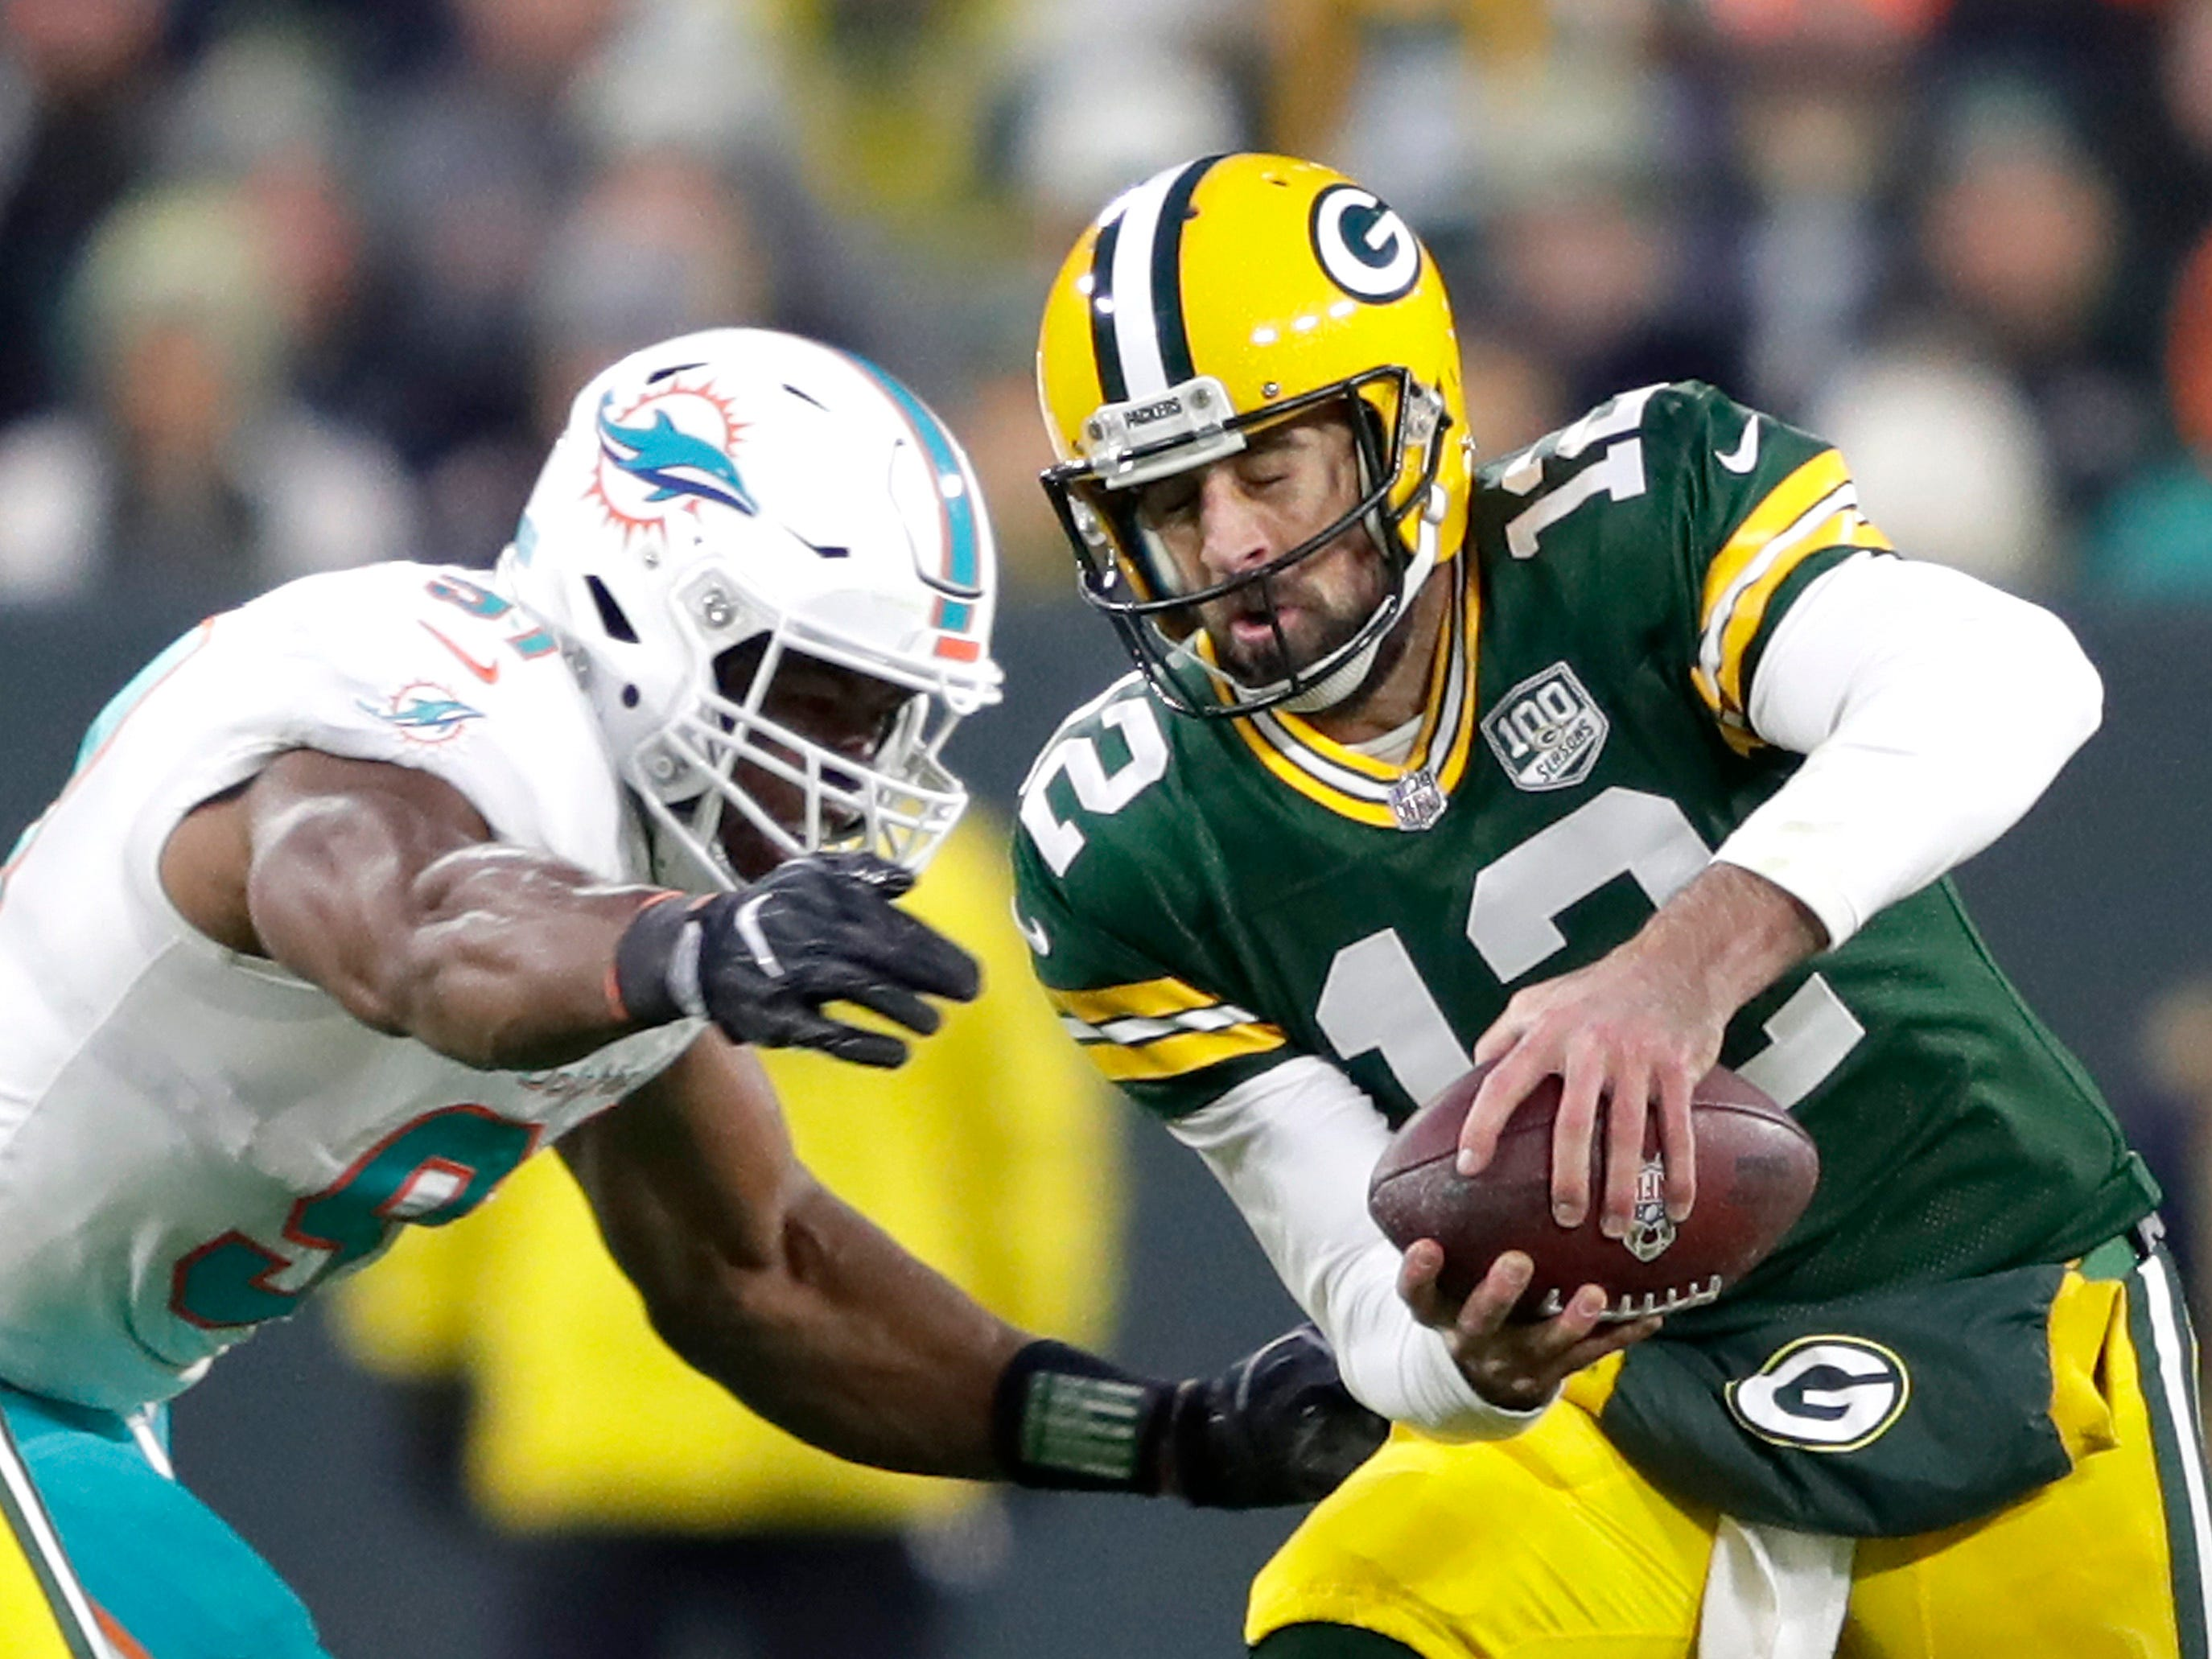 Green Bay Packers quarterback Aaron Rodgers is sacked by Miami Dolphins defensive end Cameron Wake in the first half of their football game on Sunday, November 11, 2018, at Lambeau Field in Green Bay, Wis.